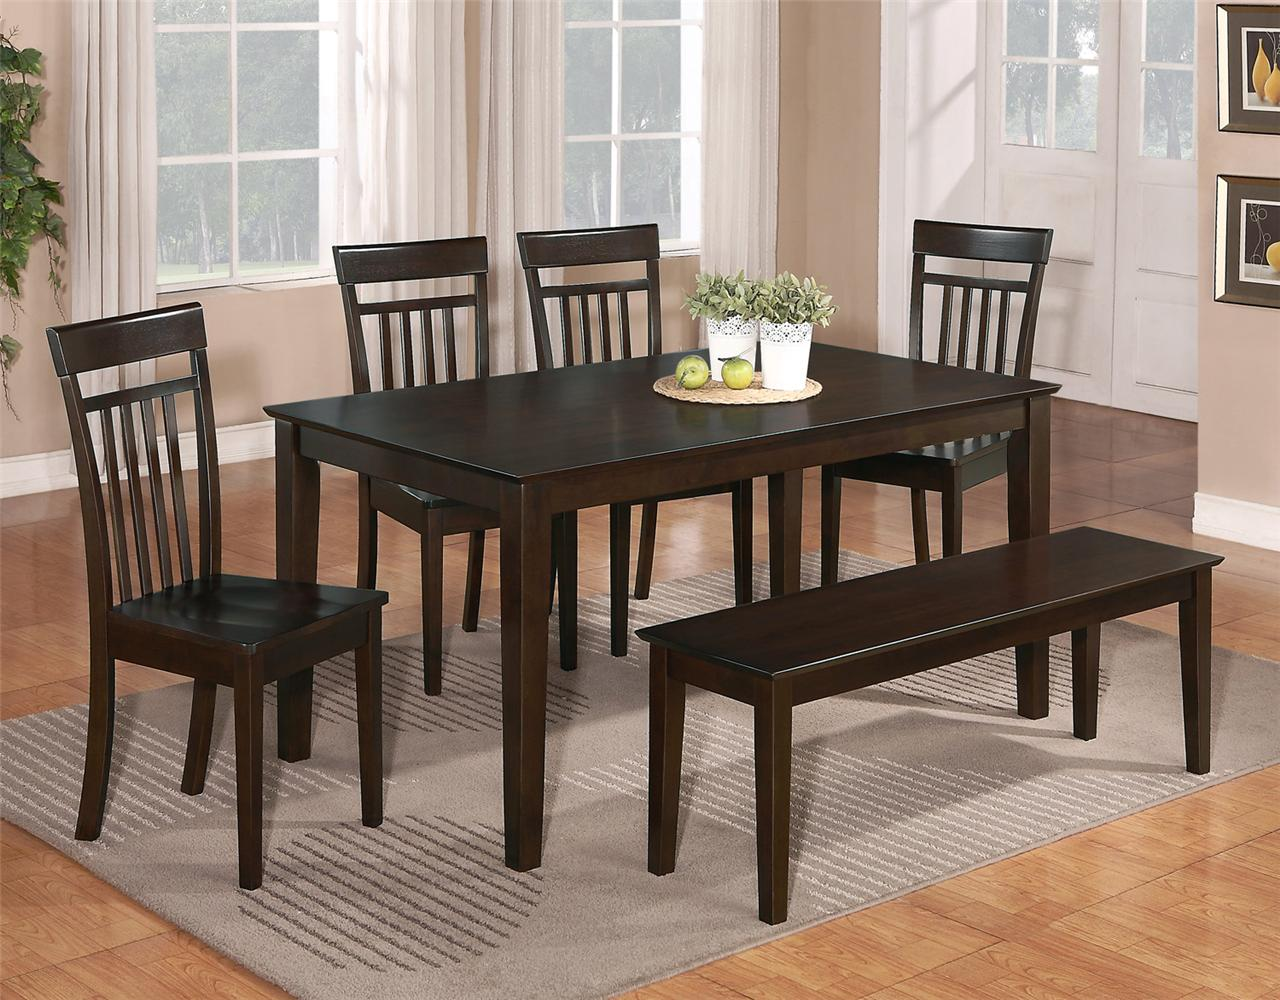 6 pc dinette kitchen dining room set table w 4 wood chair for Dining table set